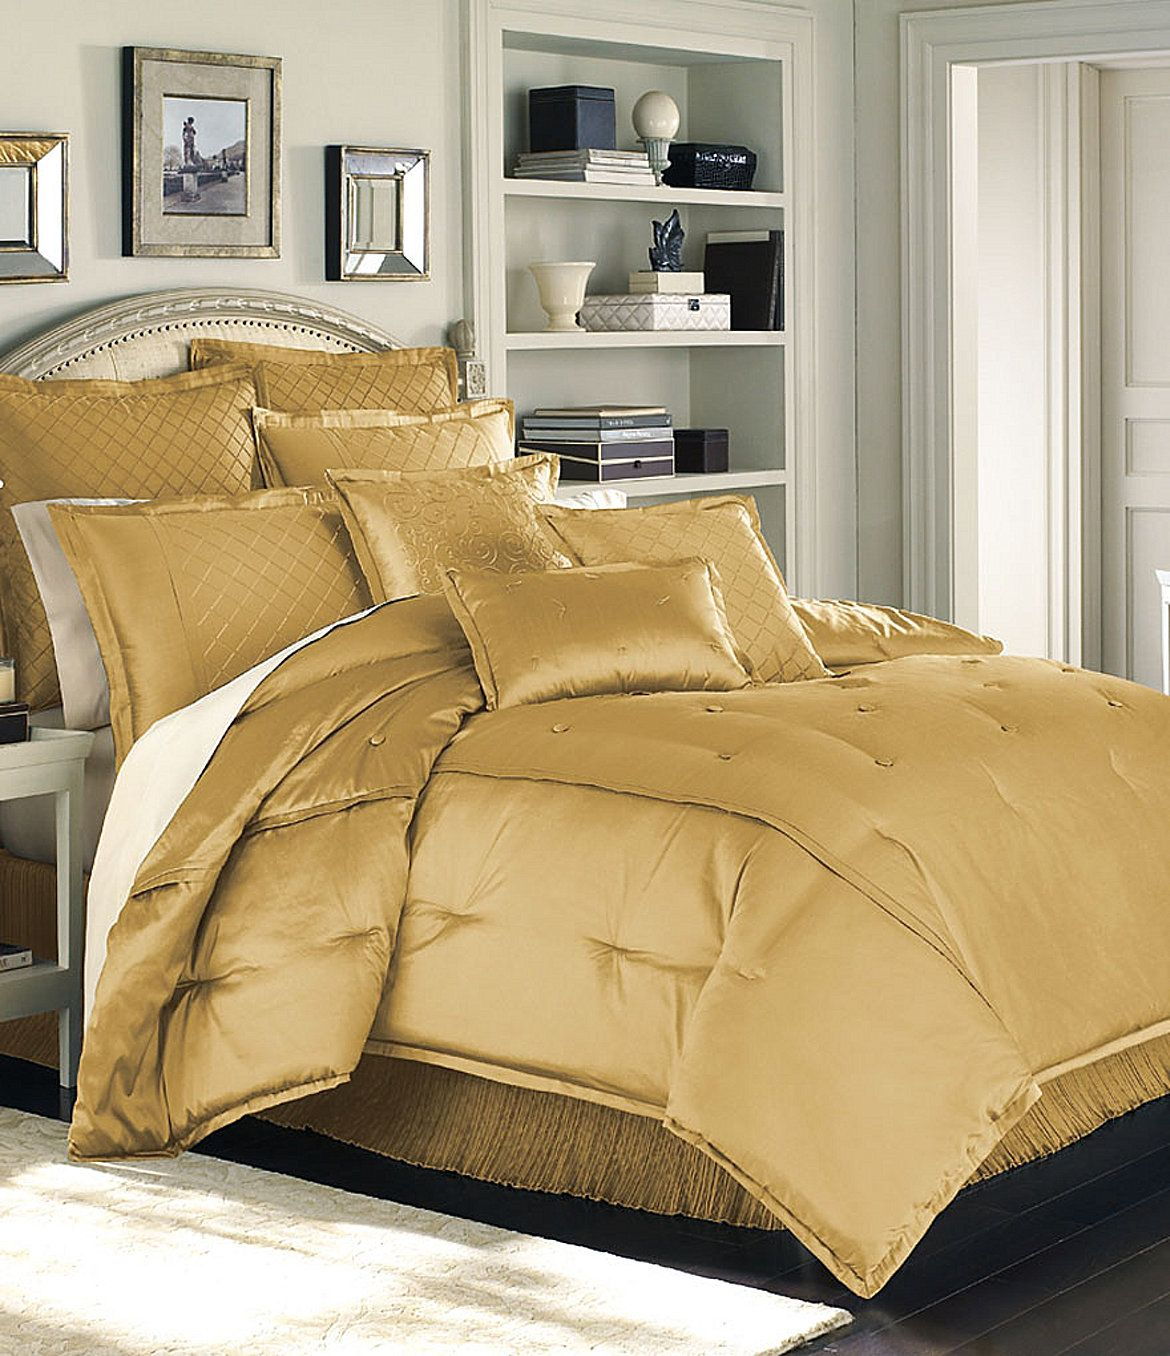 Luxury Hotel Quot Valmont Quot Gold Bedding Collection Dillards